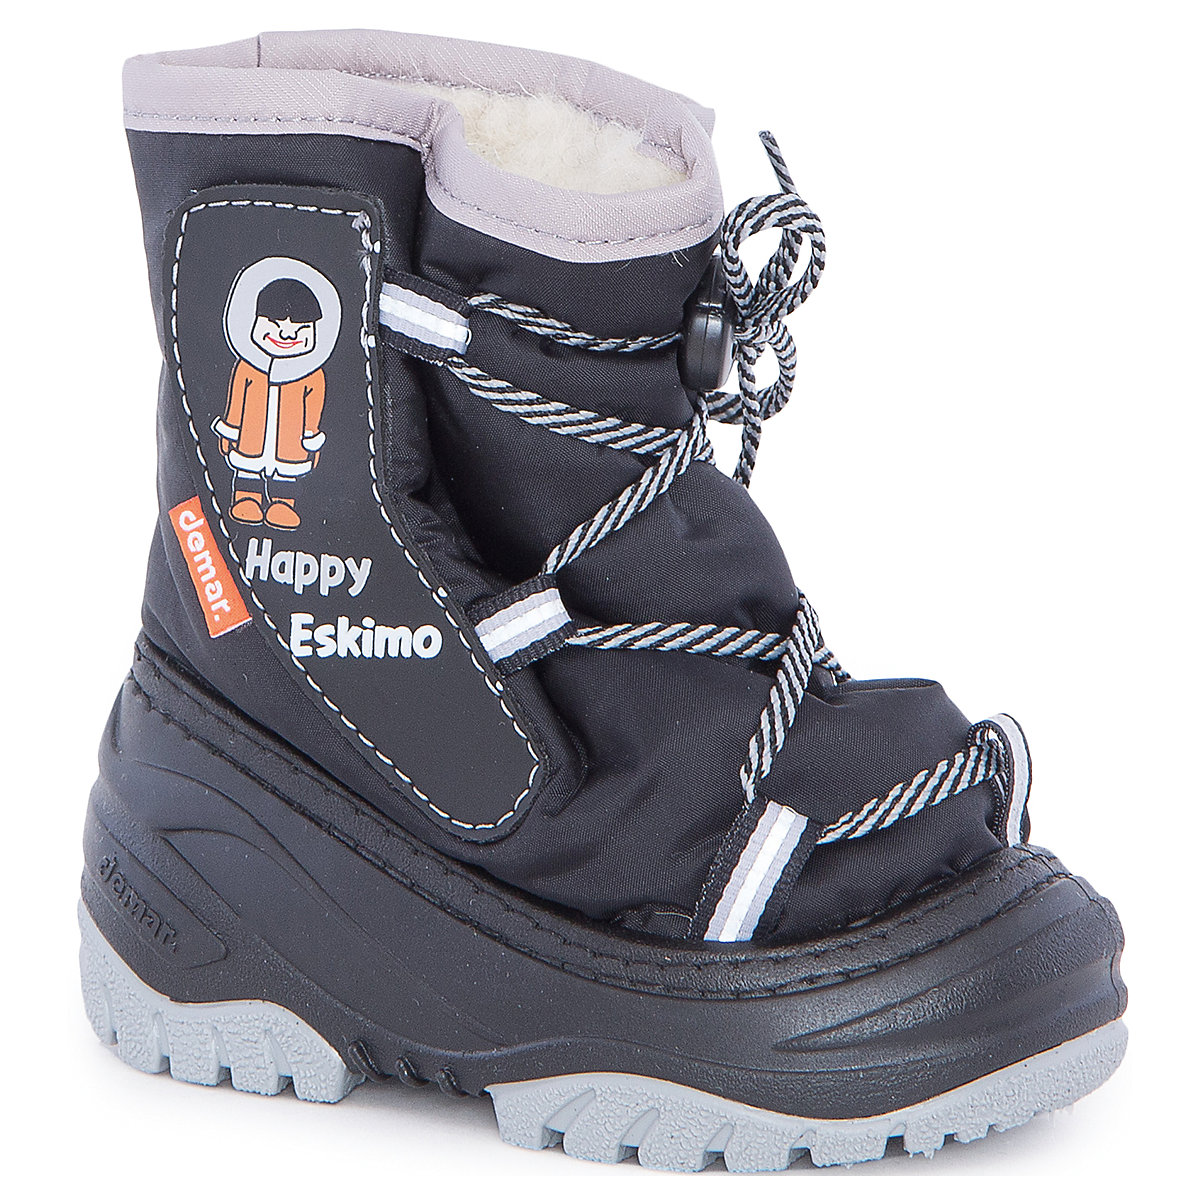 Boots Demar for boys 6835181 Valenki Uggi Winter Baby Kids Children shoes boots demar for boys and girls 6835179 valenki uggi winter baby kids children shoes